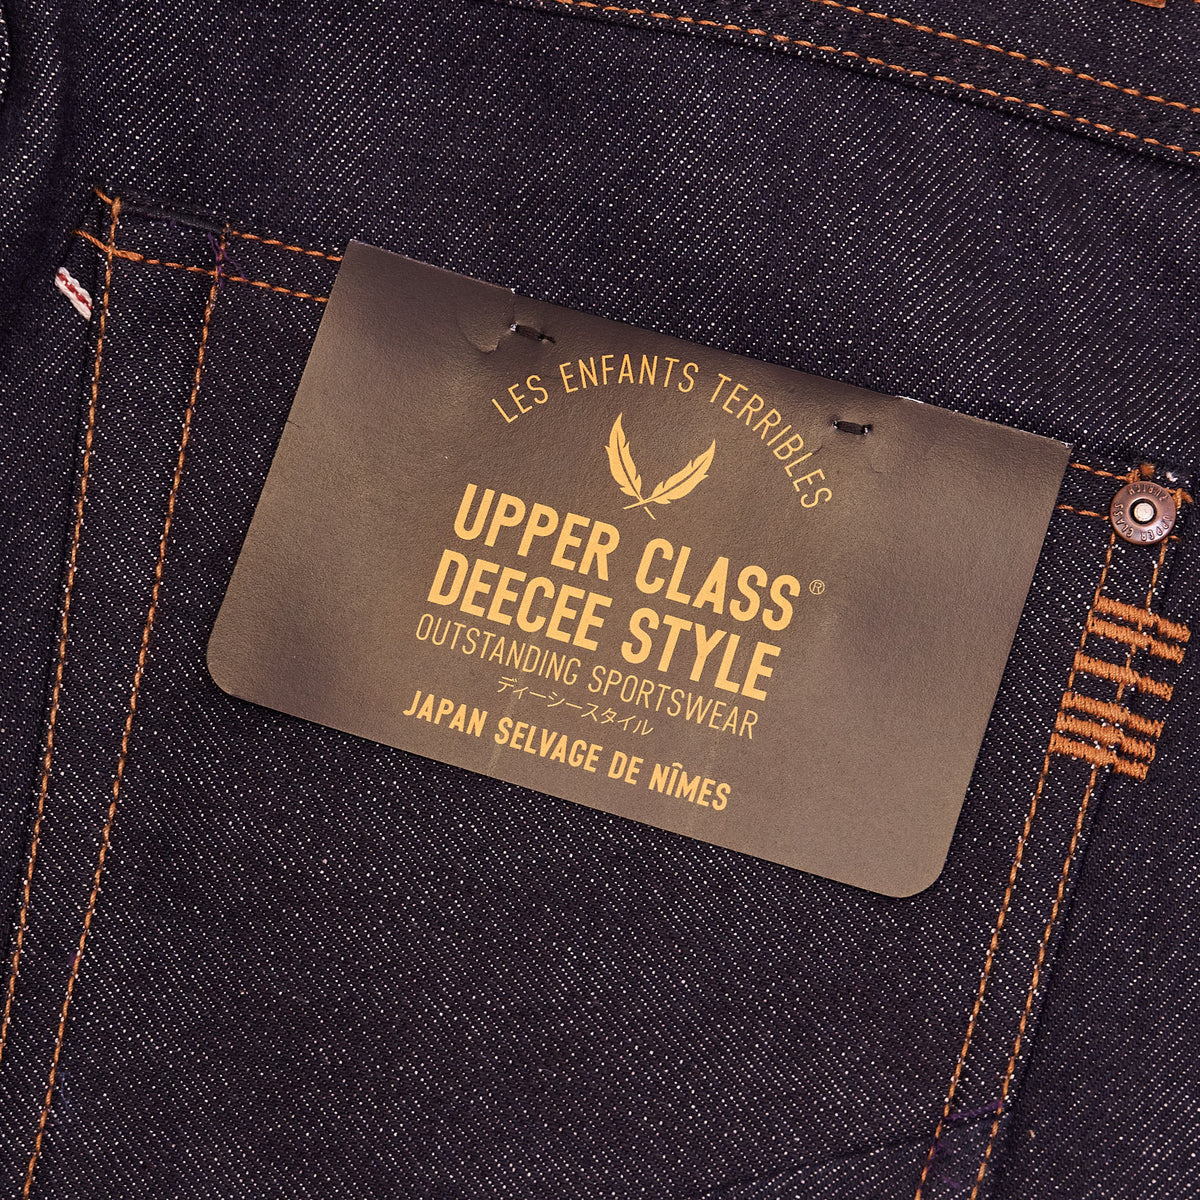 Upper Class x DeeCee style Limited-Edition Slim Selvage Denim Jeans